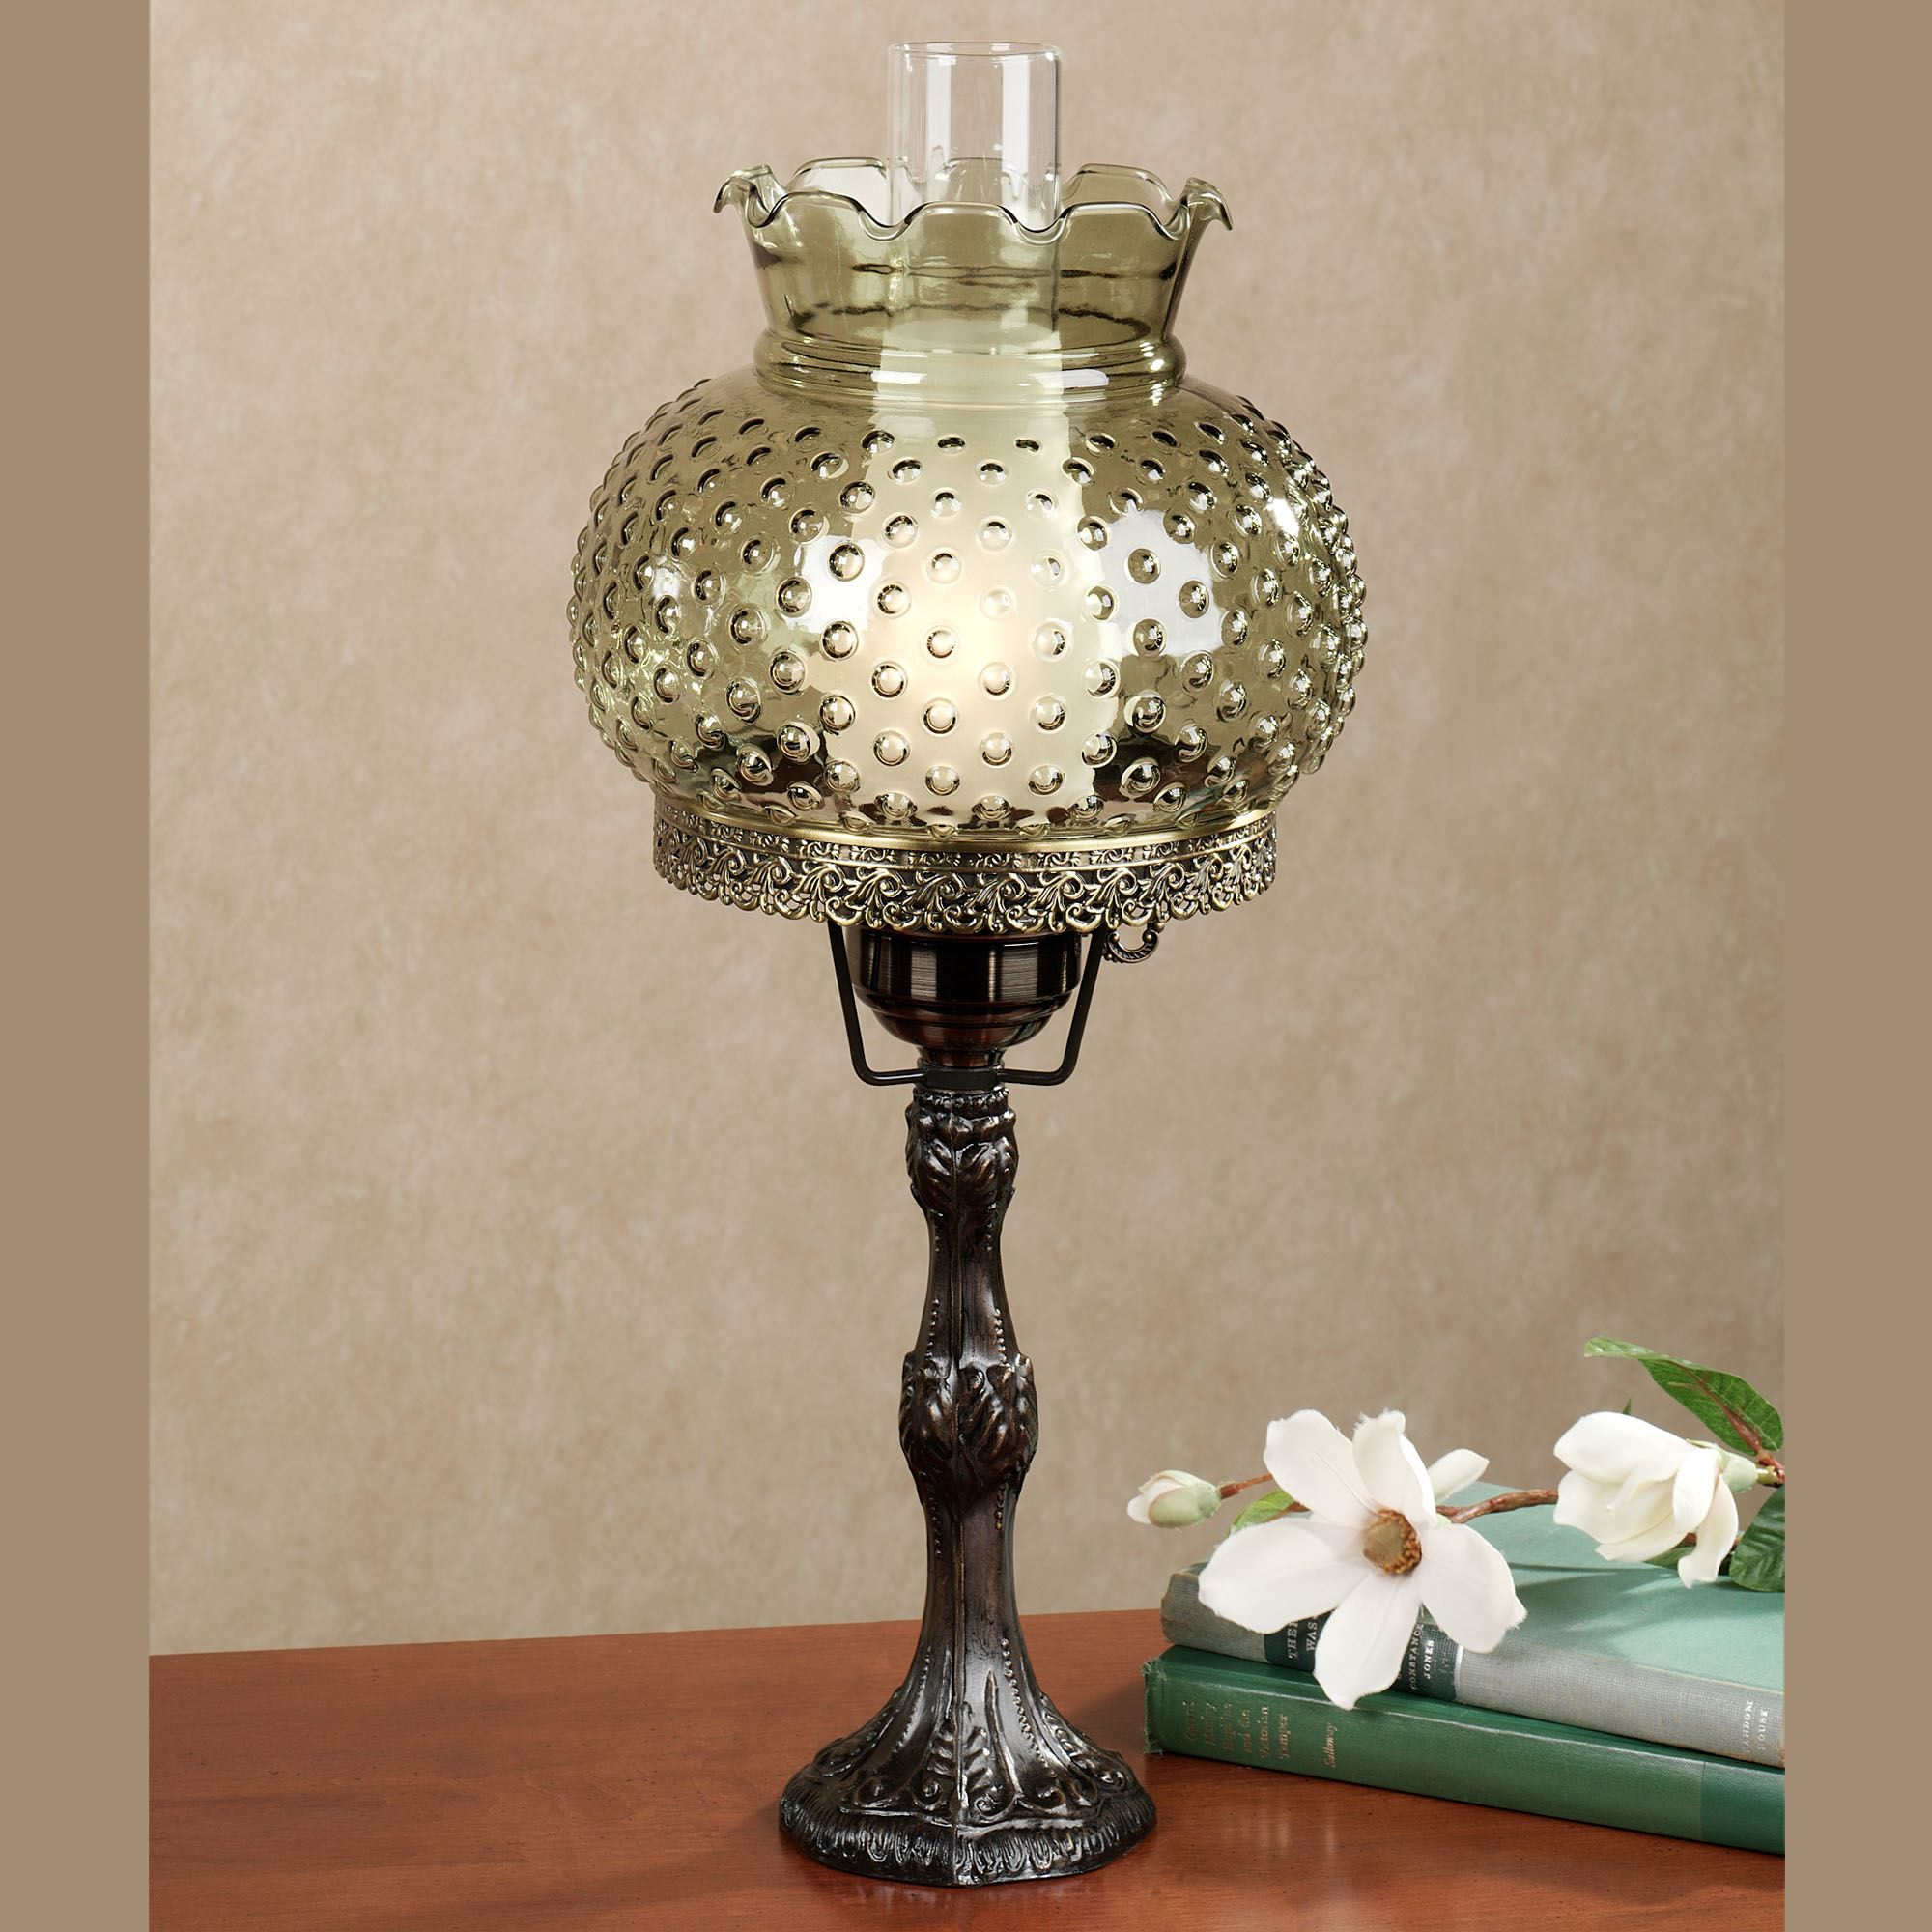 Ciara hobnail globe hurricane table lamp ciara hobnail table lamp click to expand aloadofball Gallery